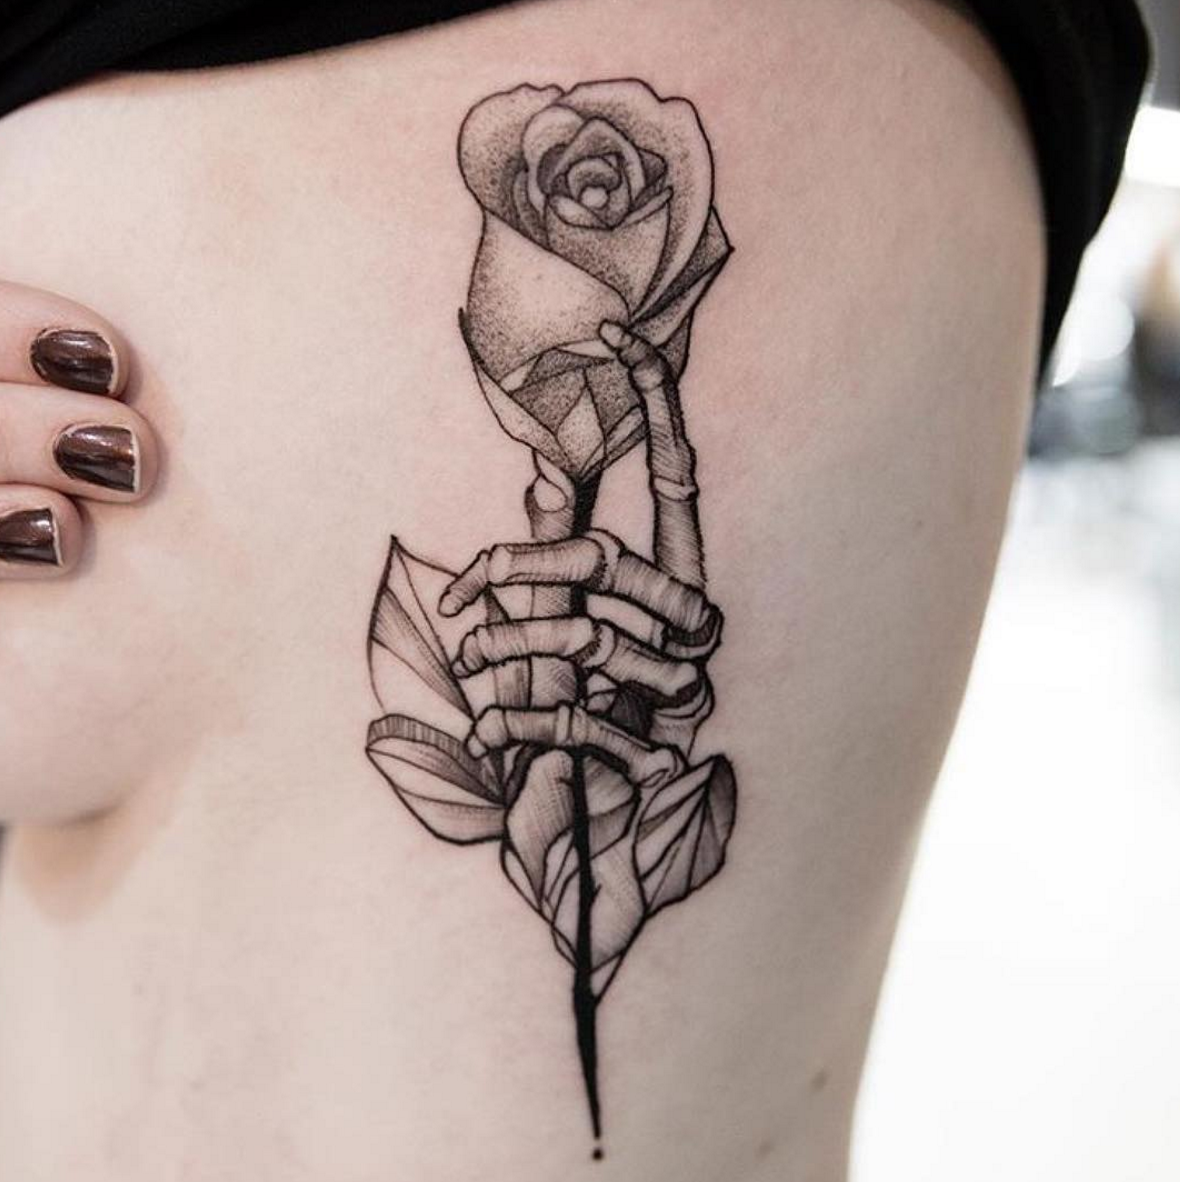 Rose In Skeleton Hand Tattoo By @romaytheart Diego Romay